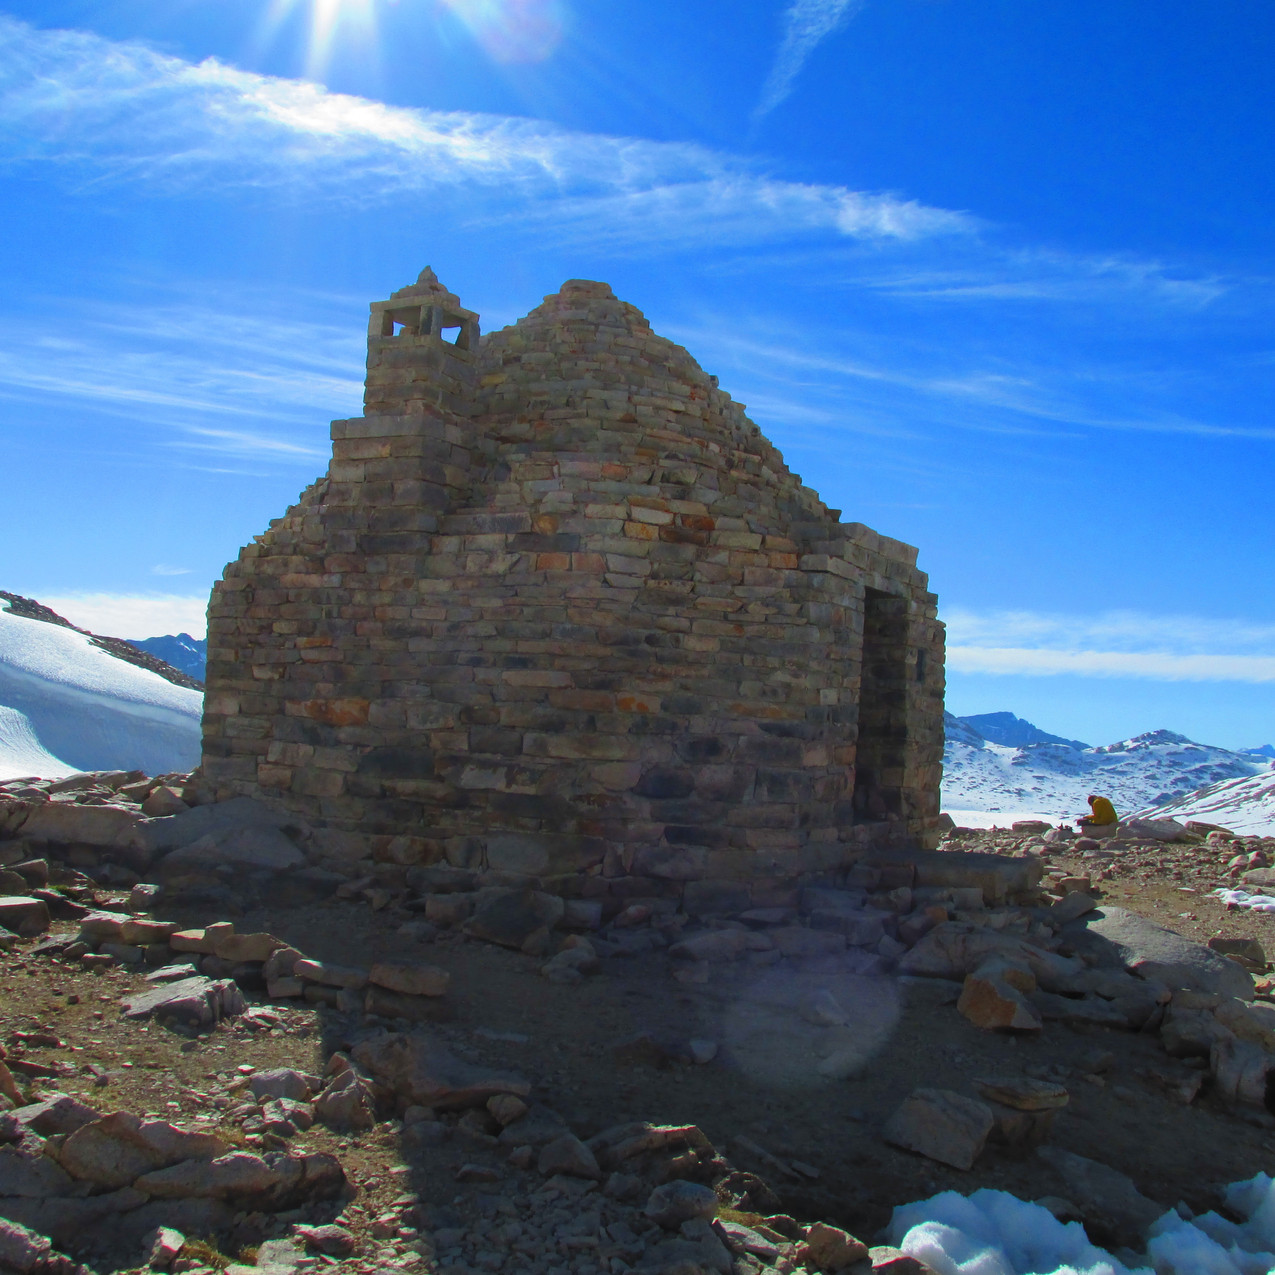 This shelter is located at the top of Muir Pass.